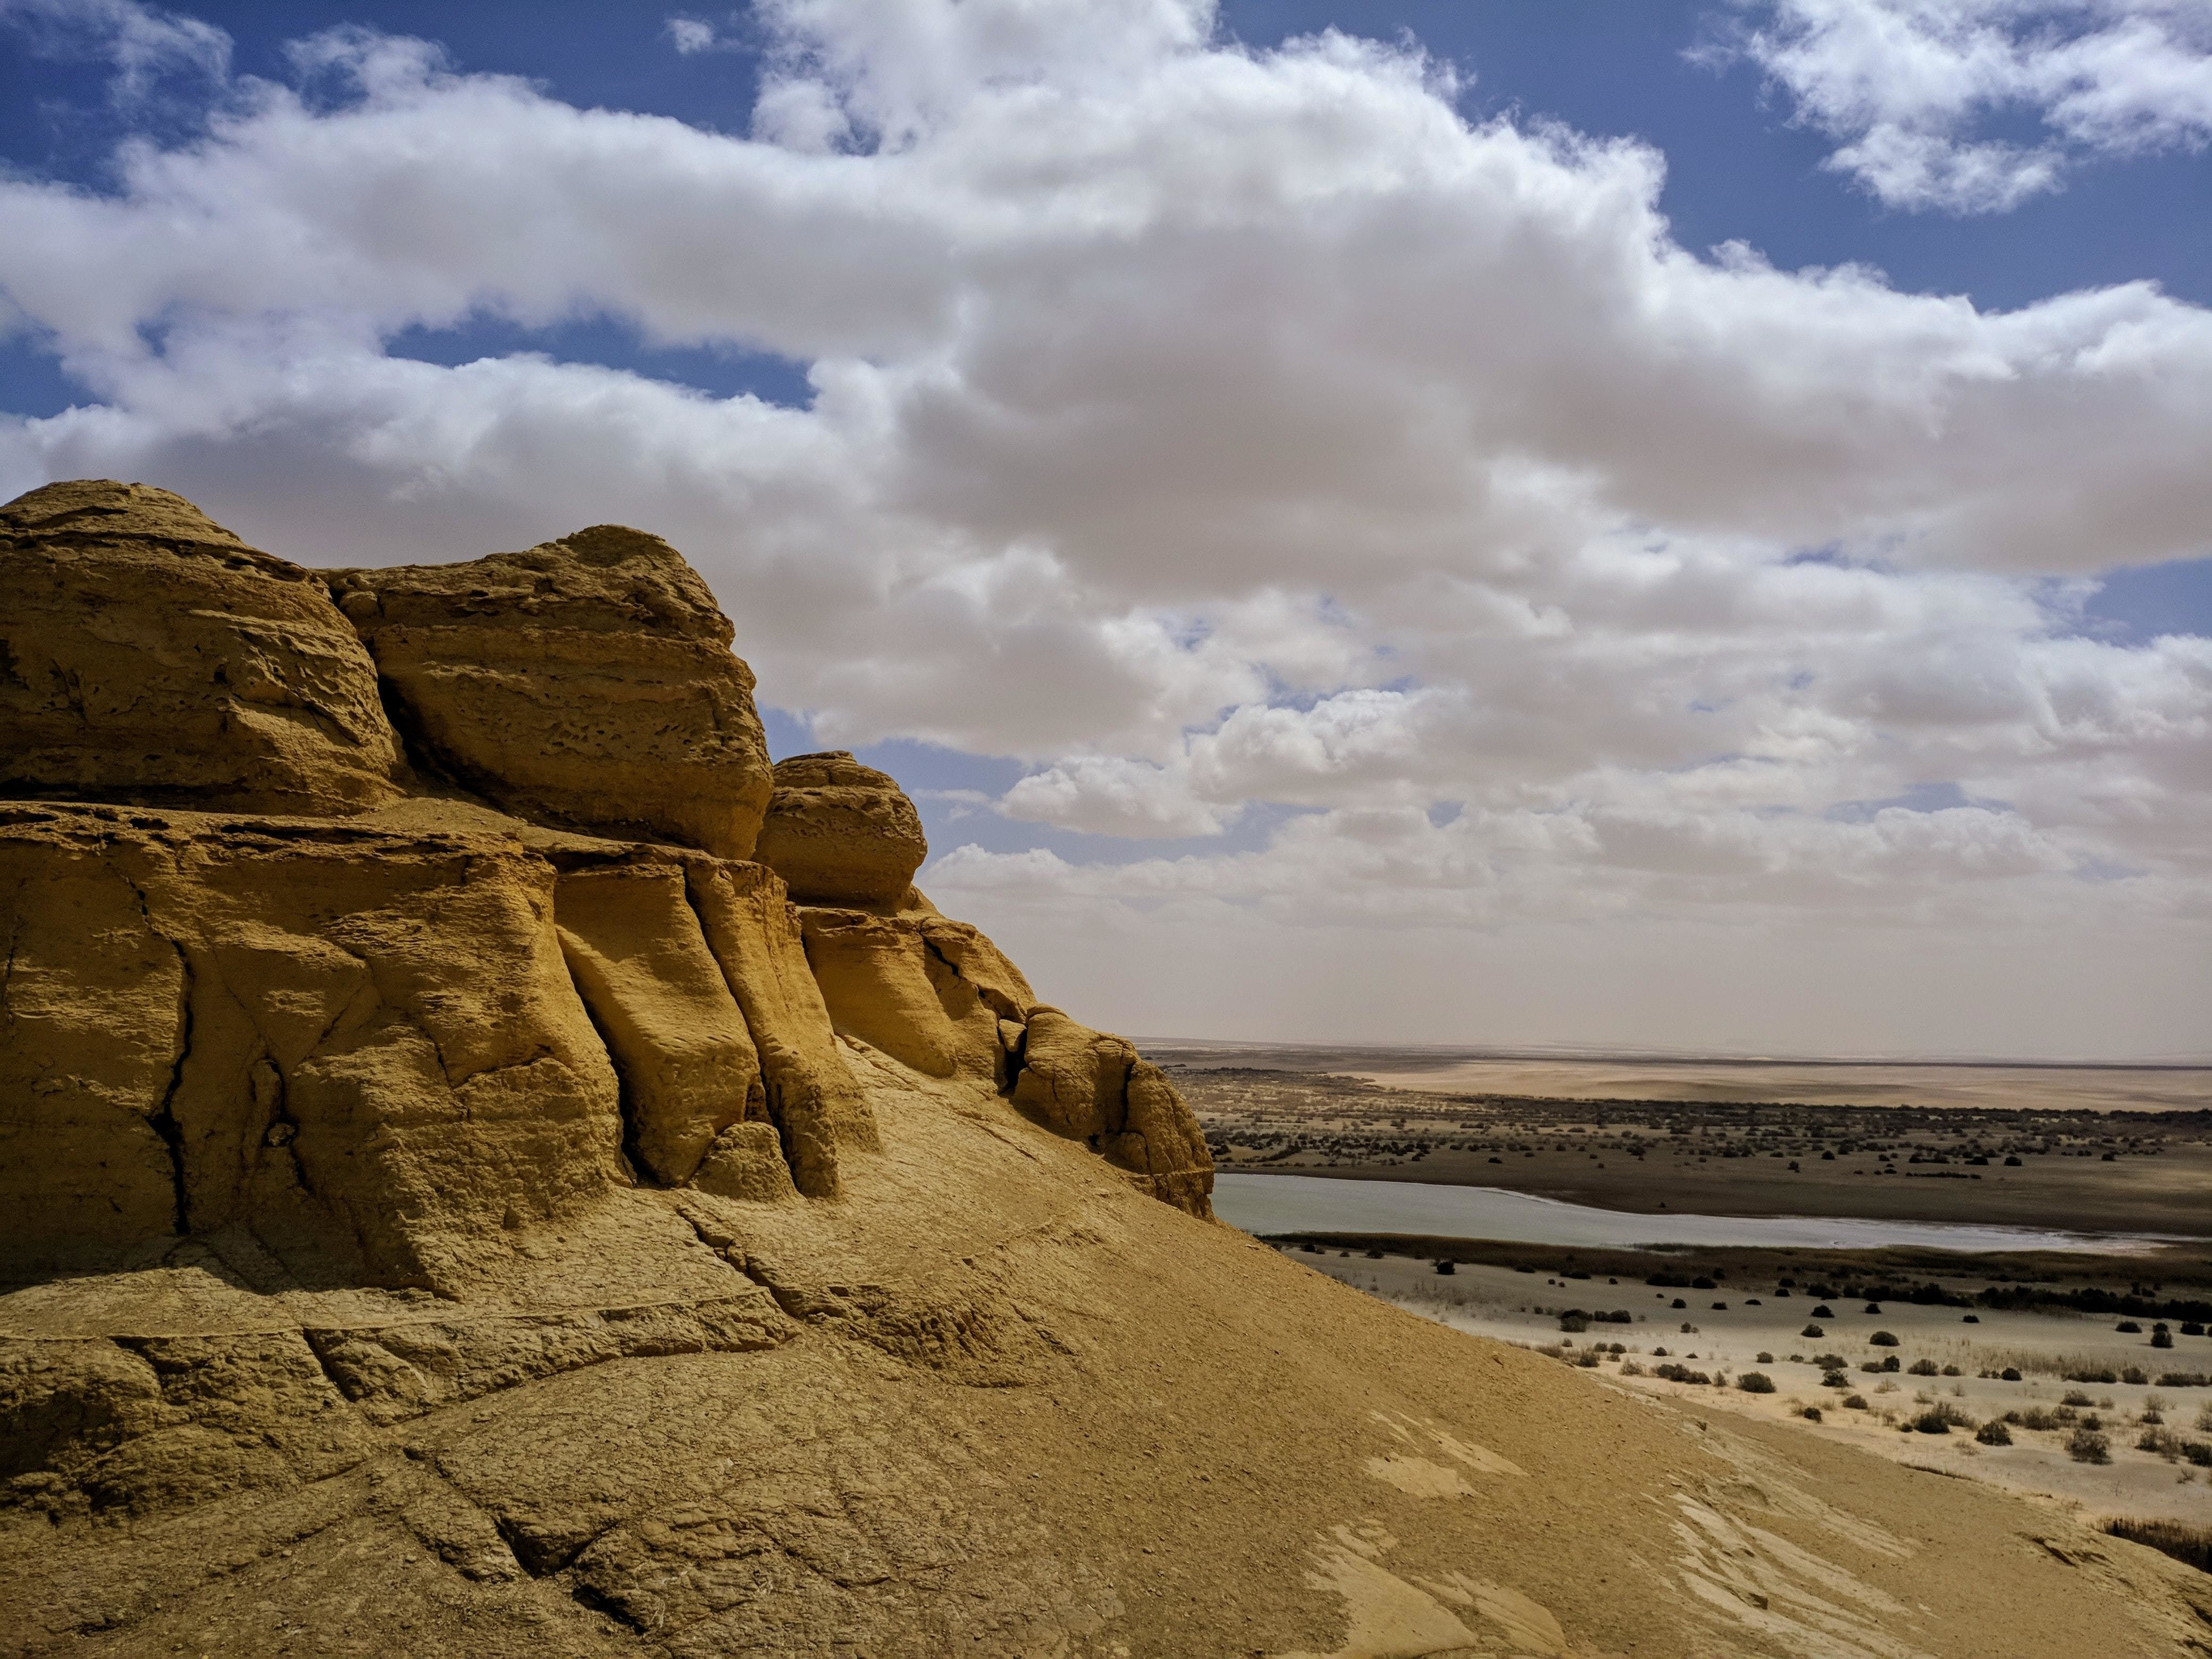 image of Wadi Al-Hitan (Valley of the Whales), Egypt